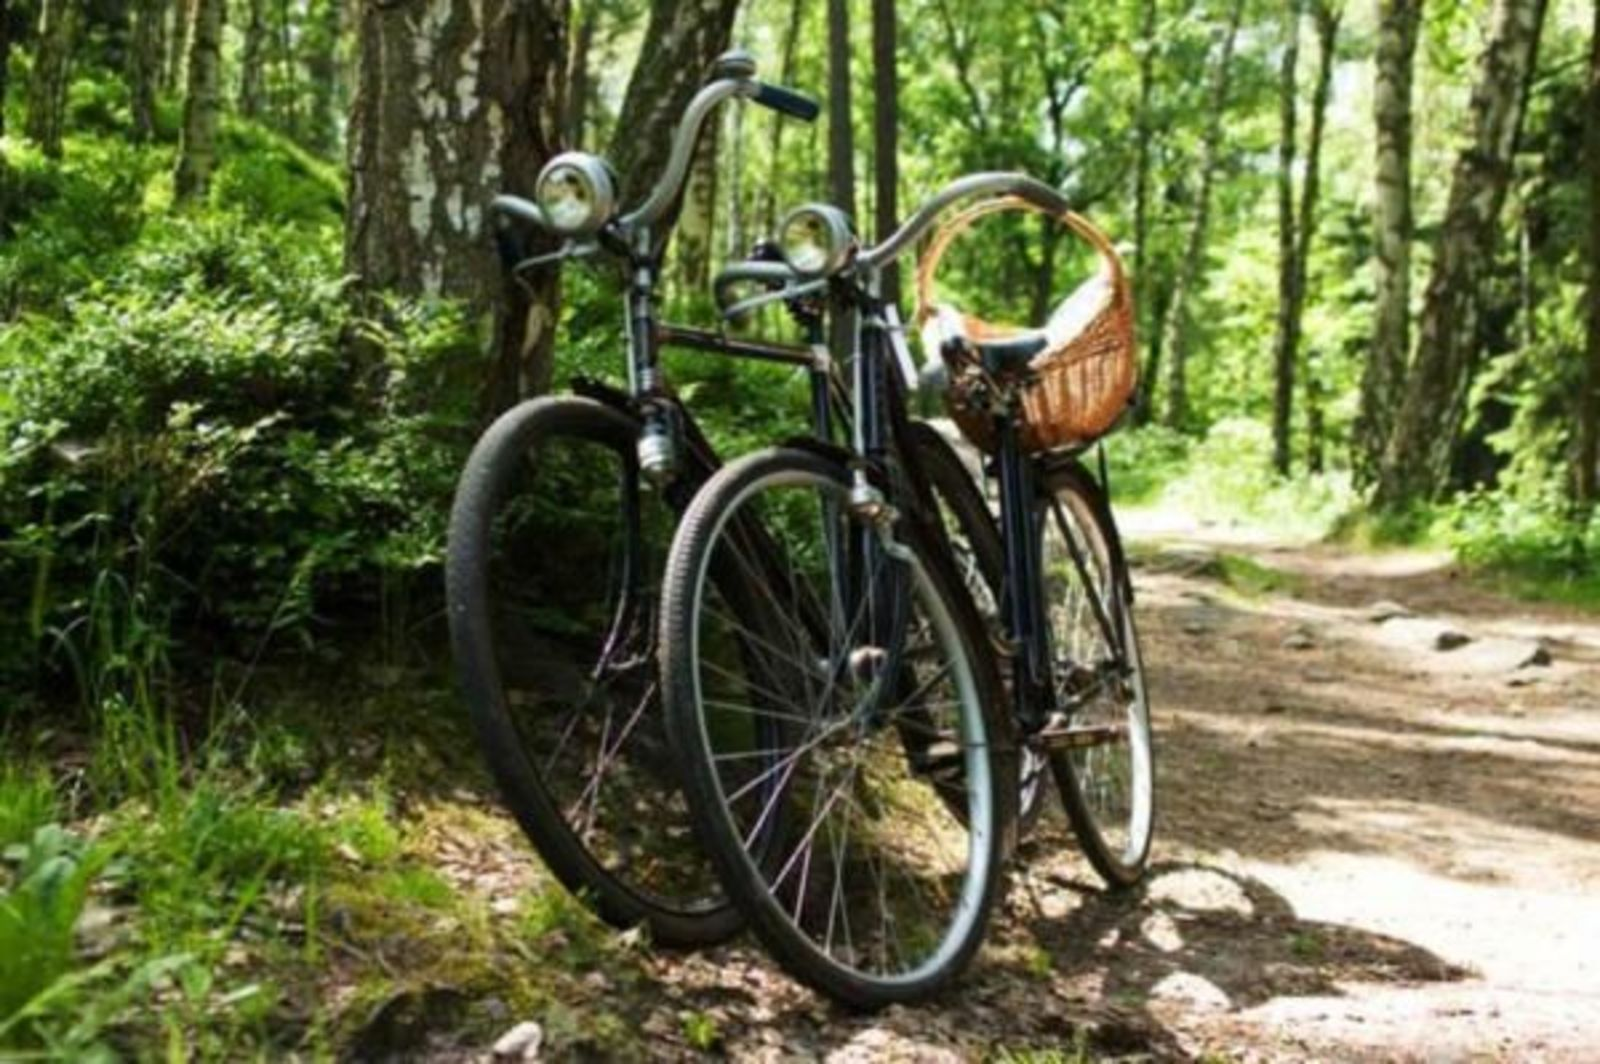 Discover the Maashorst nature reserve by bike